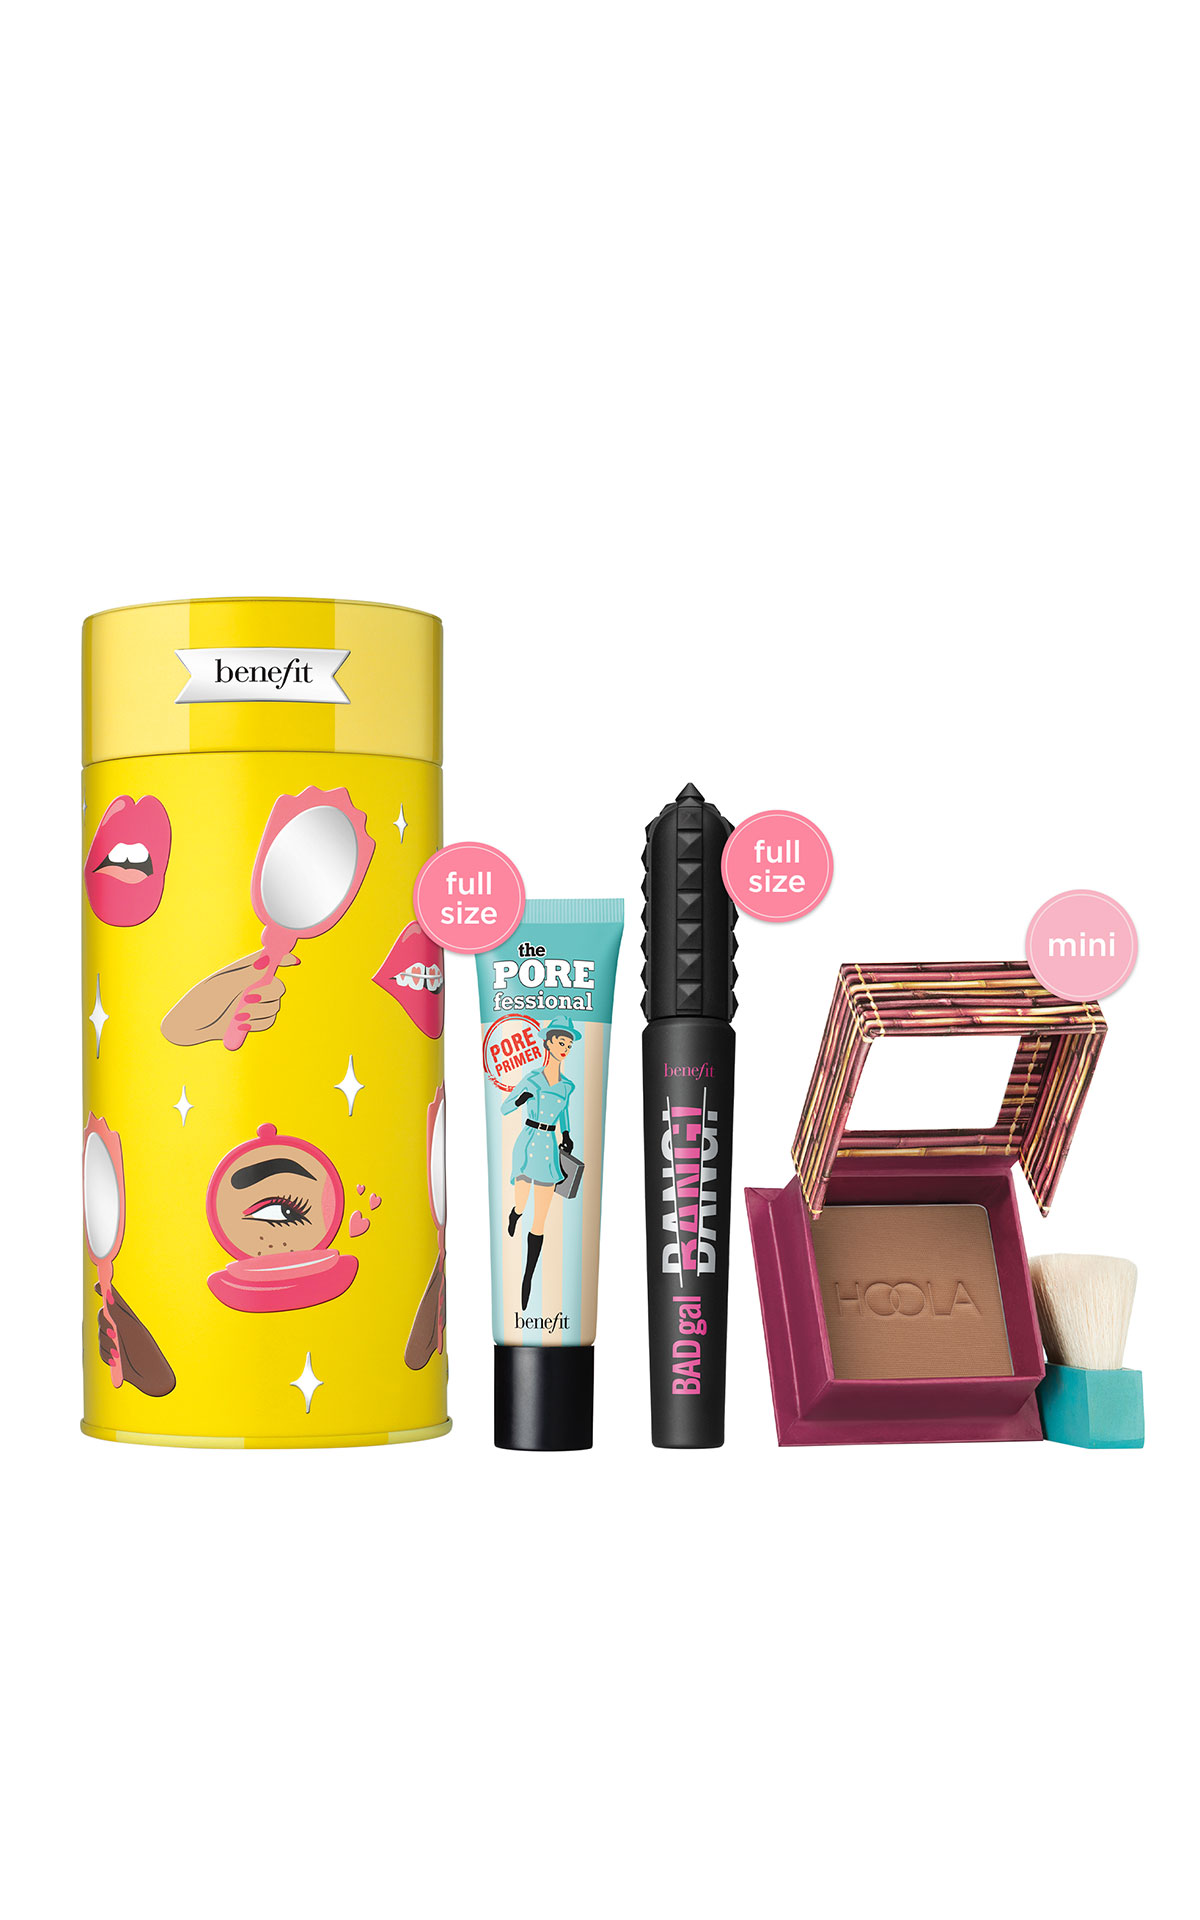 Benefit Cosmetics Badgals Night Out Makeup set from Bicester Village